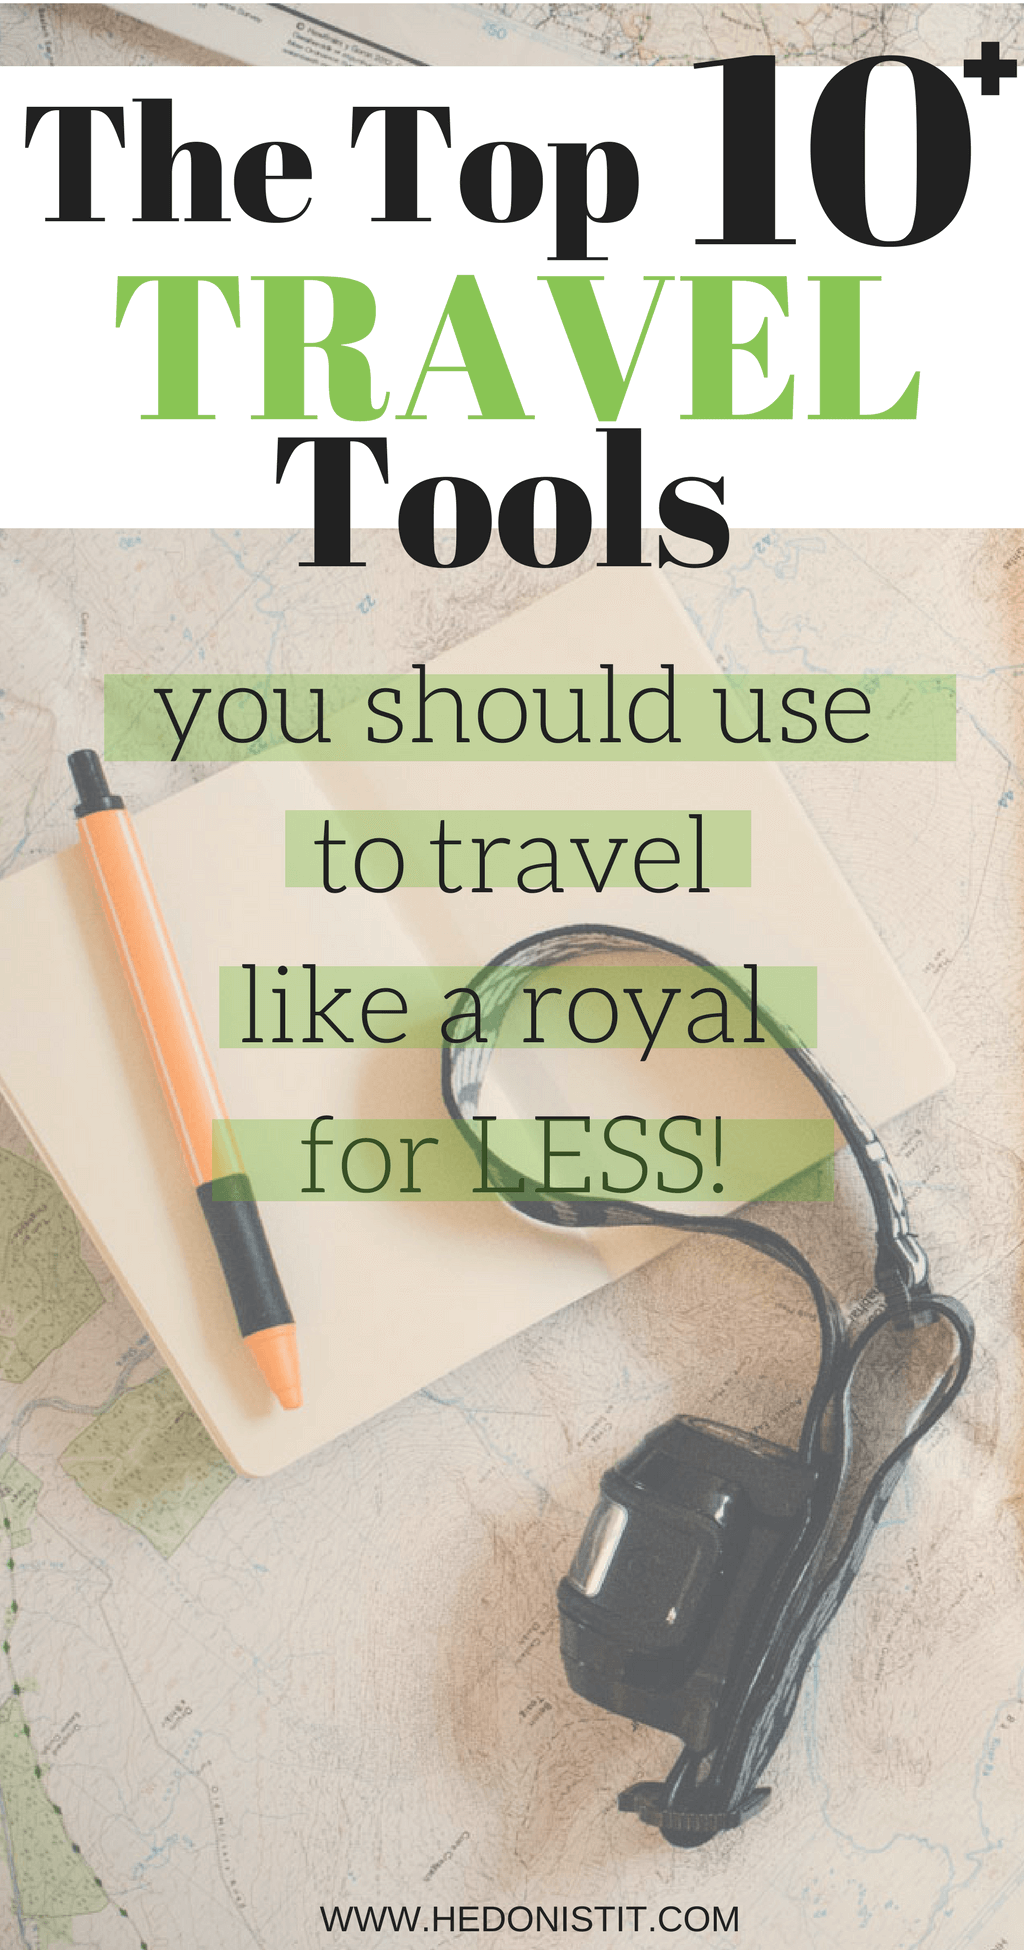 Here are my top 10 travel essentials I use to travel for cheap and to have the most comfortable trip ever. These top companies will help you to save money on your trips and to travel smarter. You NEED to check this list out!